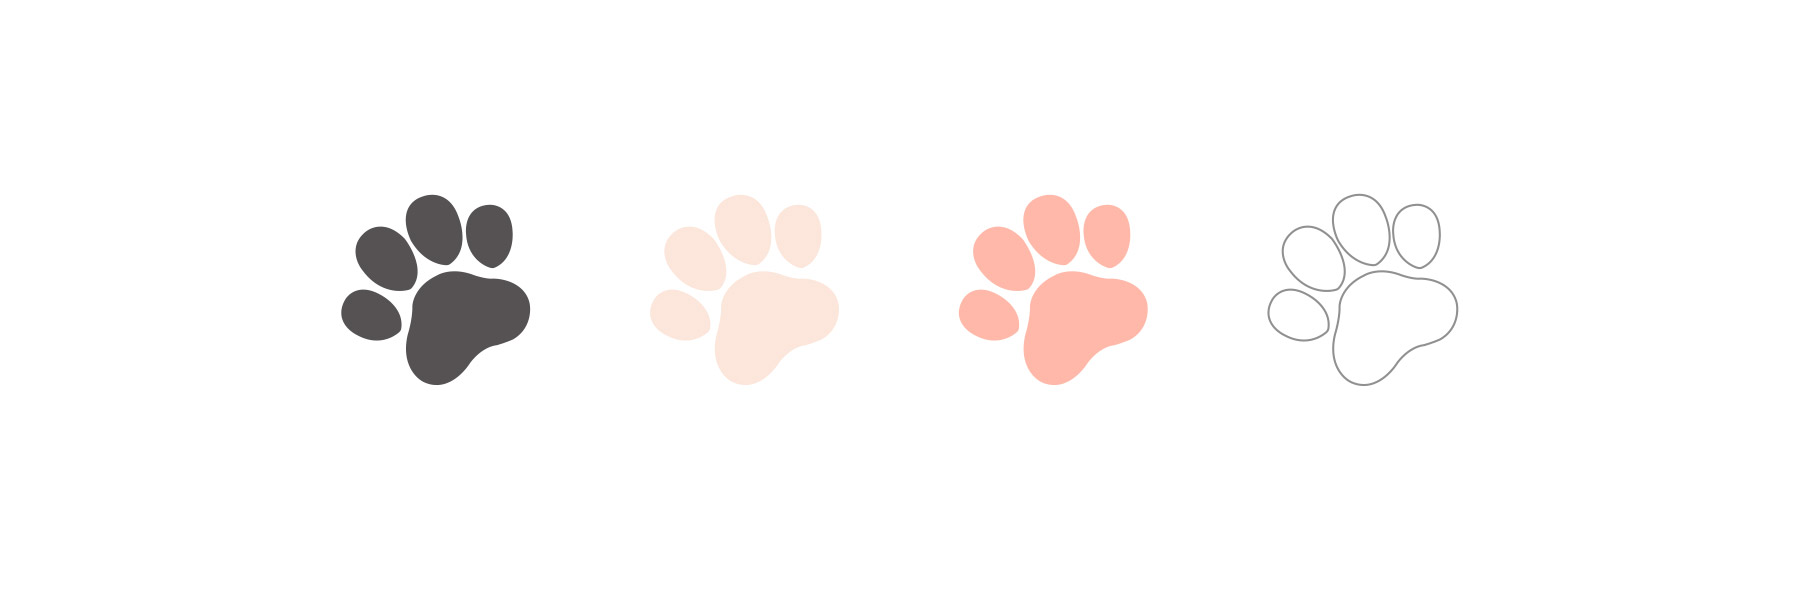 Puppy paw print drawings